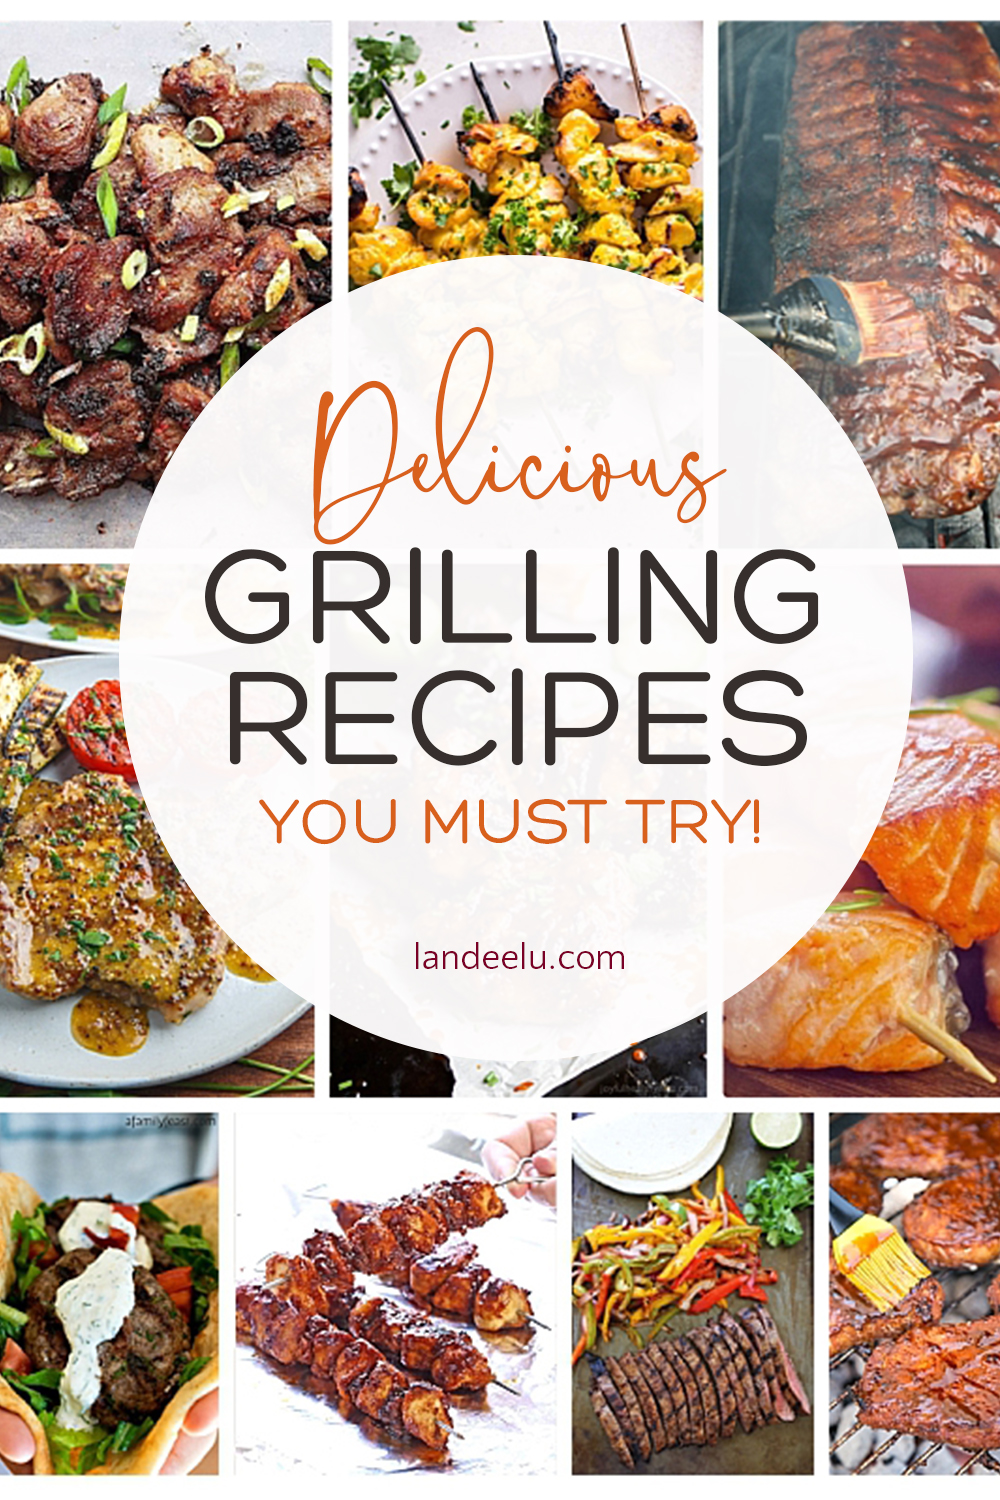 Tons of delicious grilling recipes-- beyond the basic burger! #grilling #grillingrecipes #summerrecipes #grillmaster